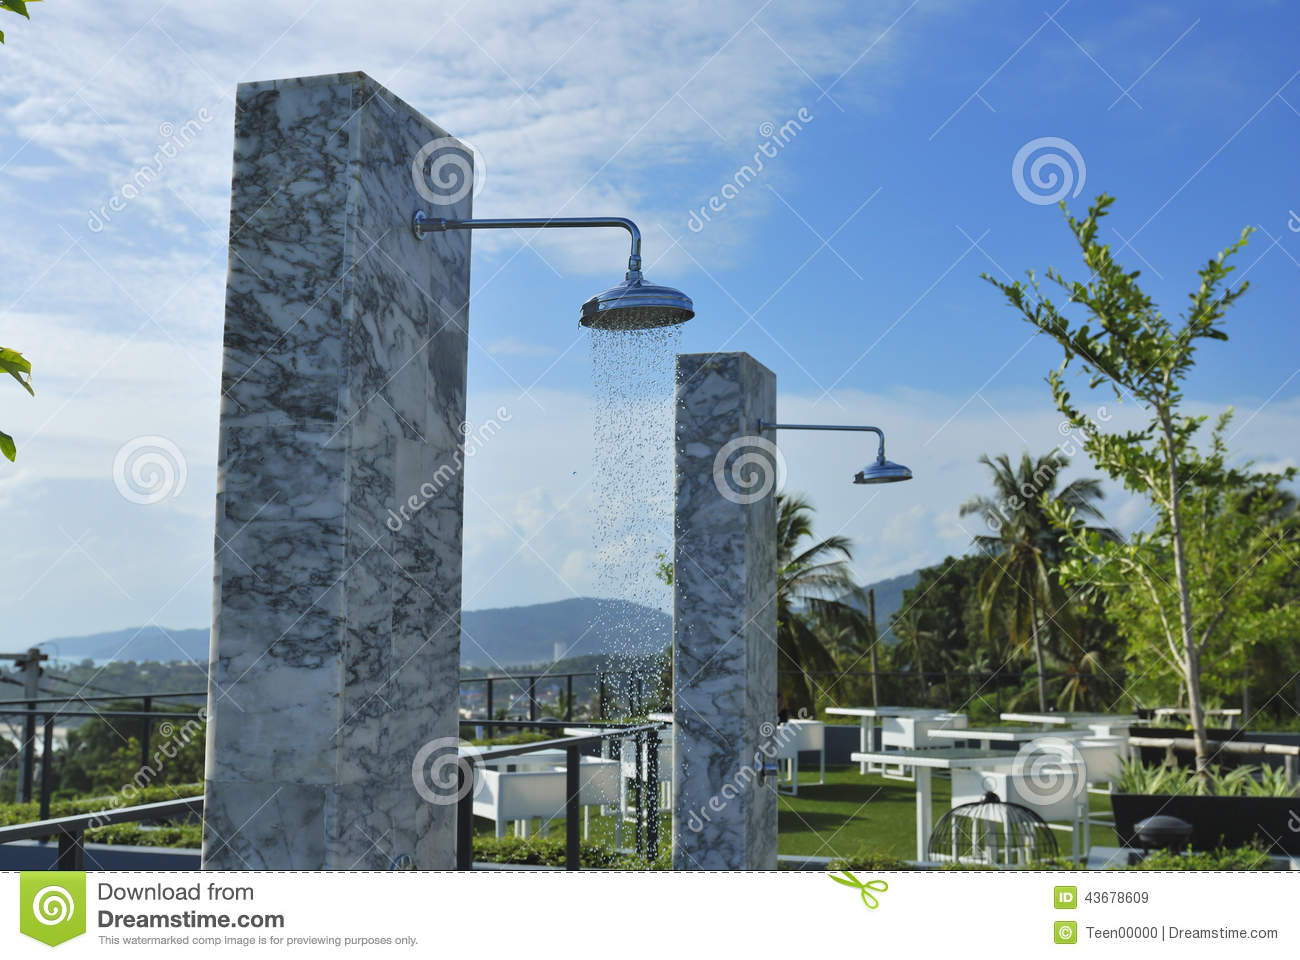 Outdoor Shower At Swimming Pool And Beach Stock Photo 43678609 ...